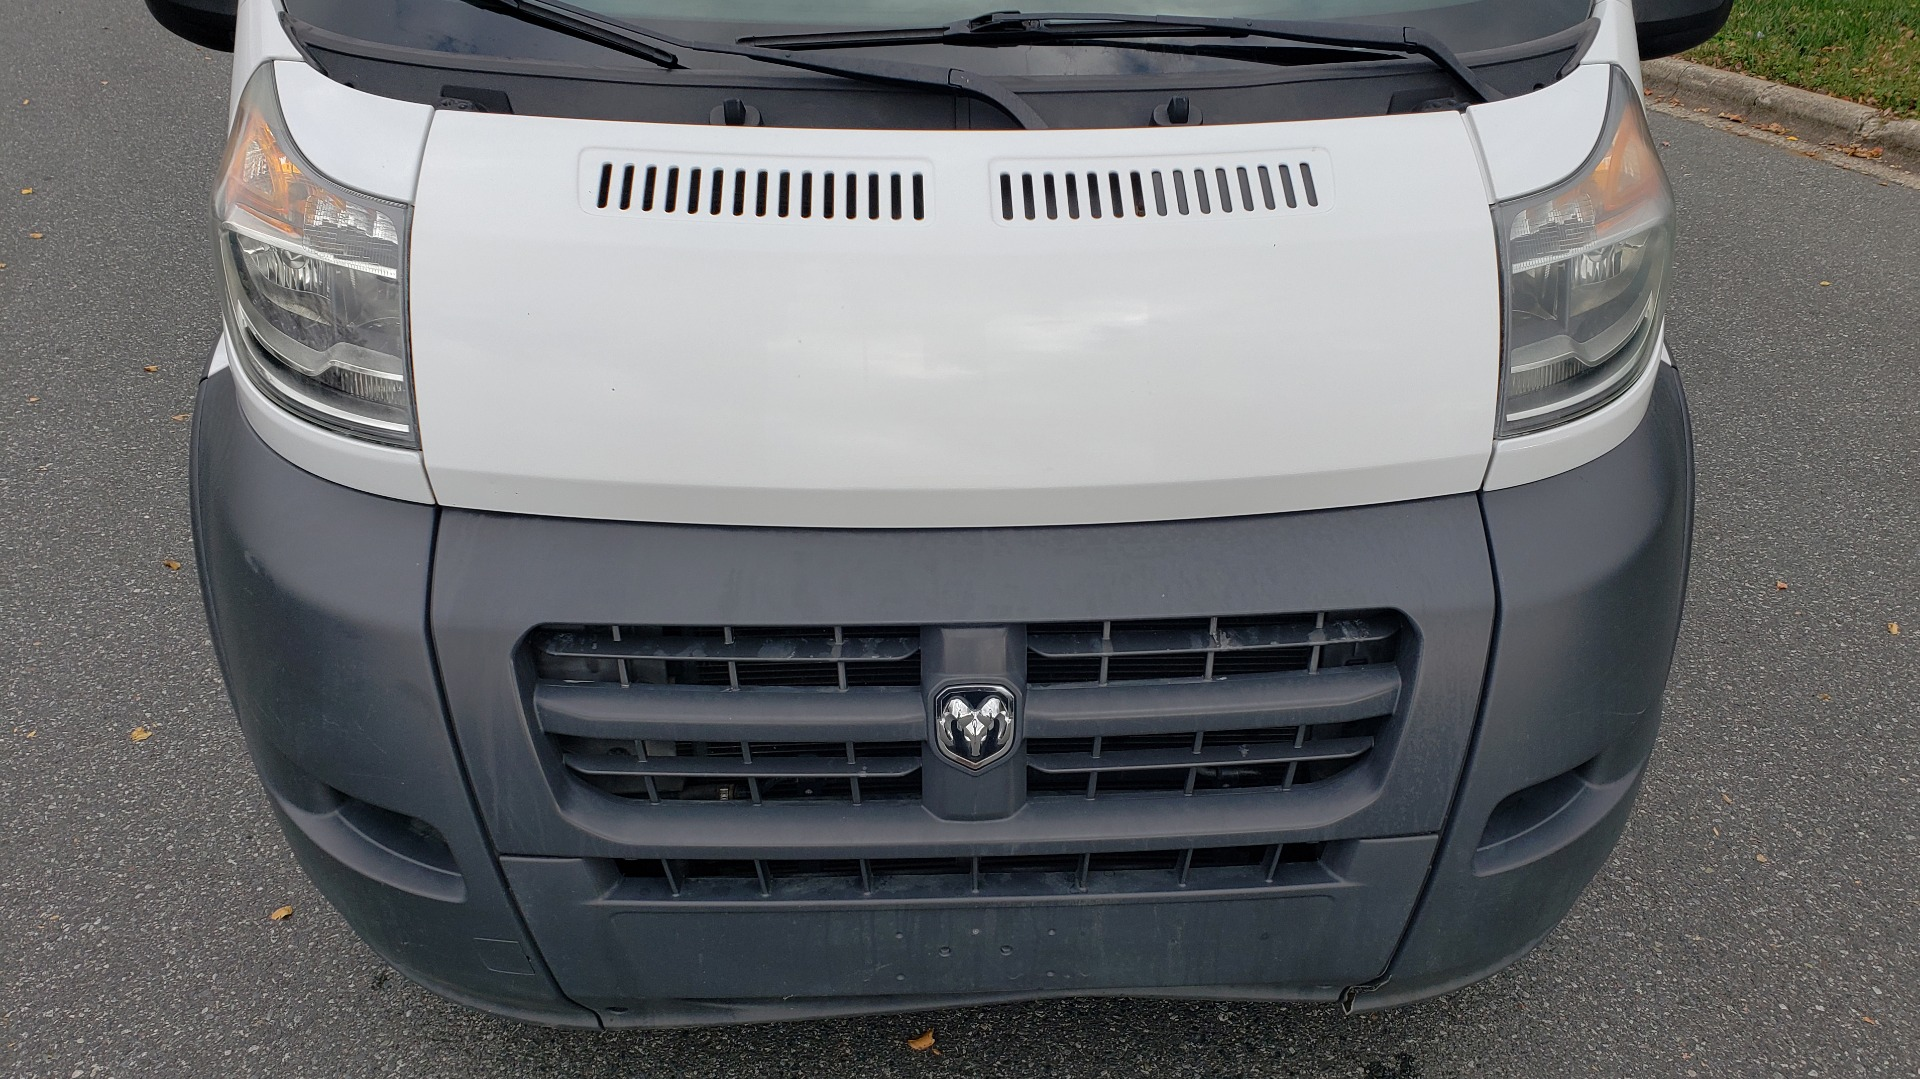 Used 2015 Ram PROMASTER CARGO VAN 136-INCH WB / LOW ROOF / LADDER RACK / INSIDE RACKS for sale Sold at Formula Imports in Charlotte NC 28227 22